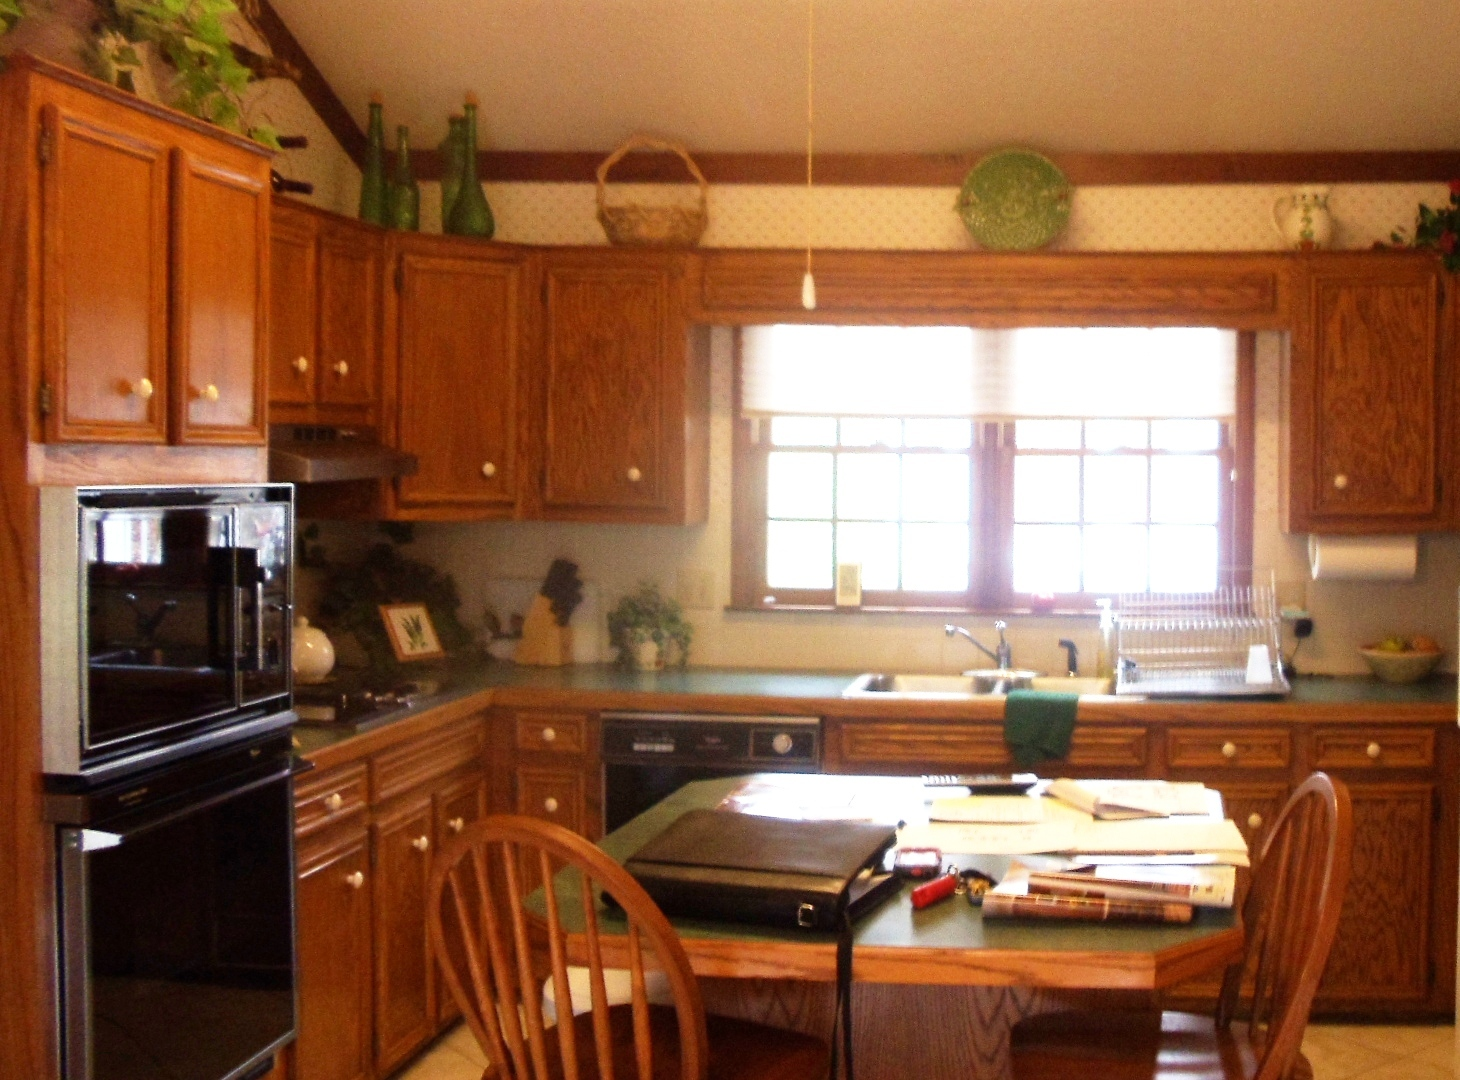 types of cabinets for kitchen how to update a kitchen on a budget 6 tips and photos for 27407